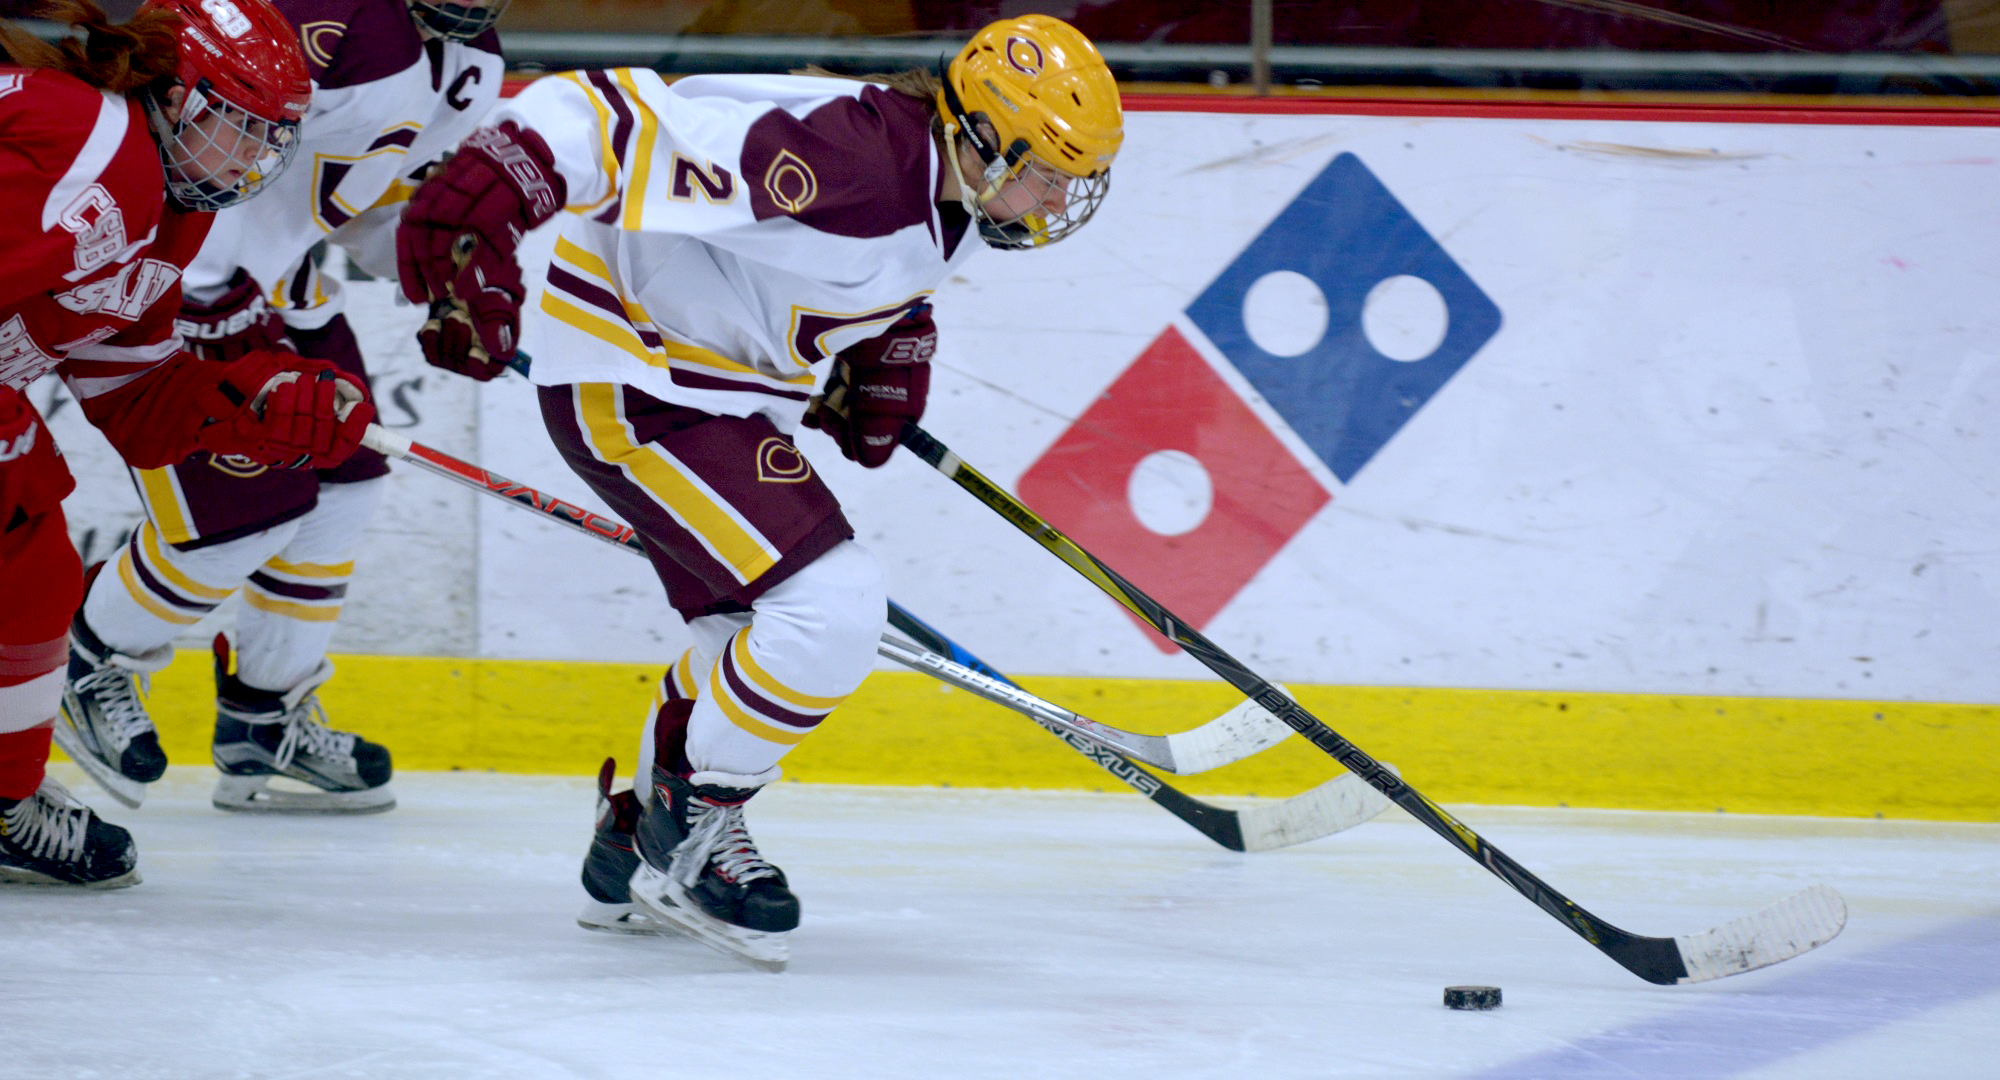 Junior Amanda Flemming recorded four points in the Cobbers' 7-4 win at Northland.